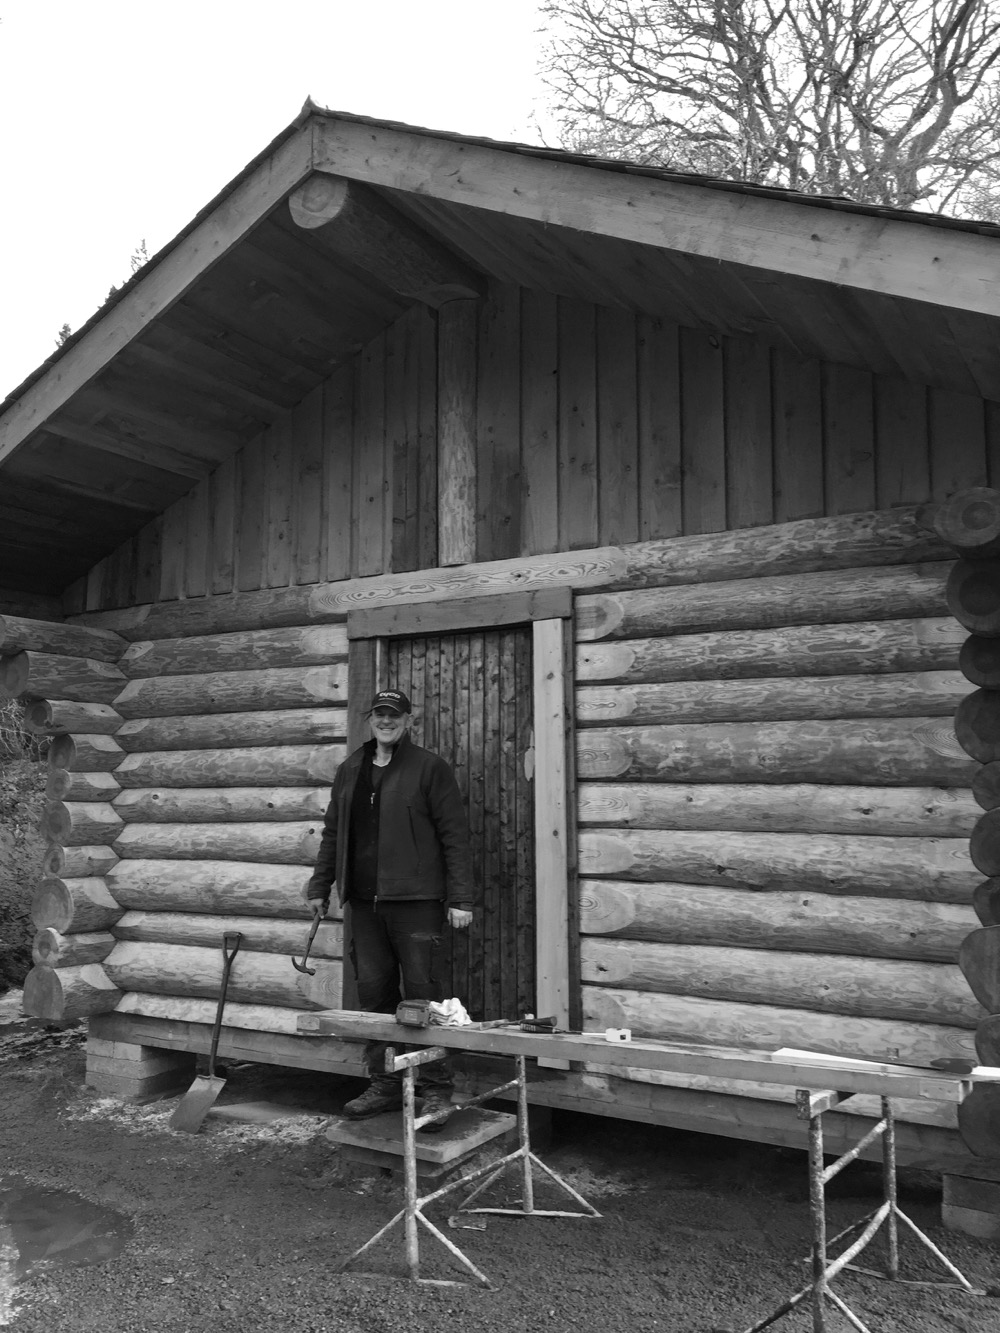 Ewen in front of the Canadian log cabin he built